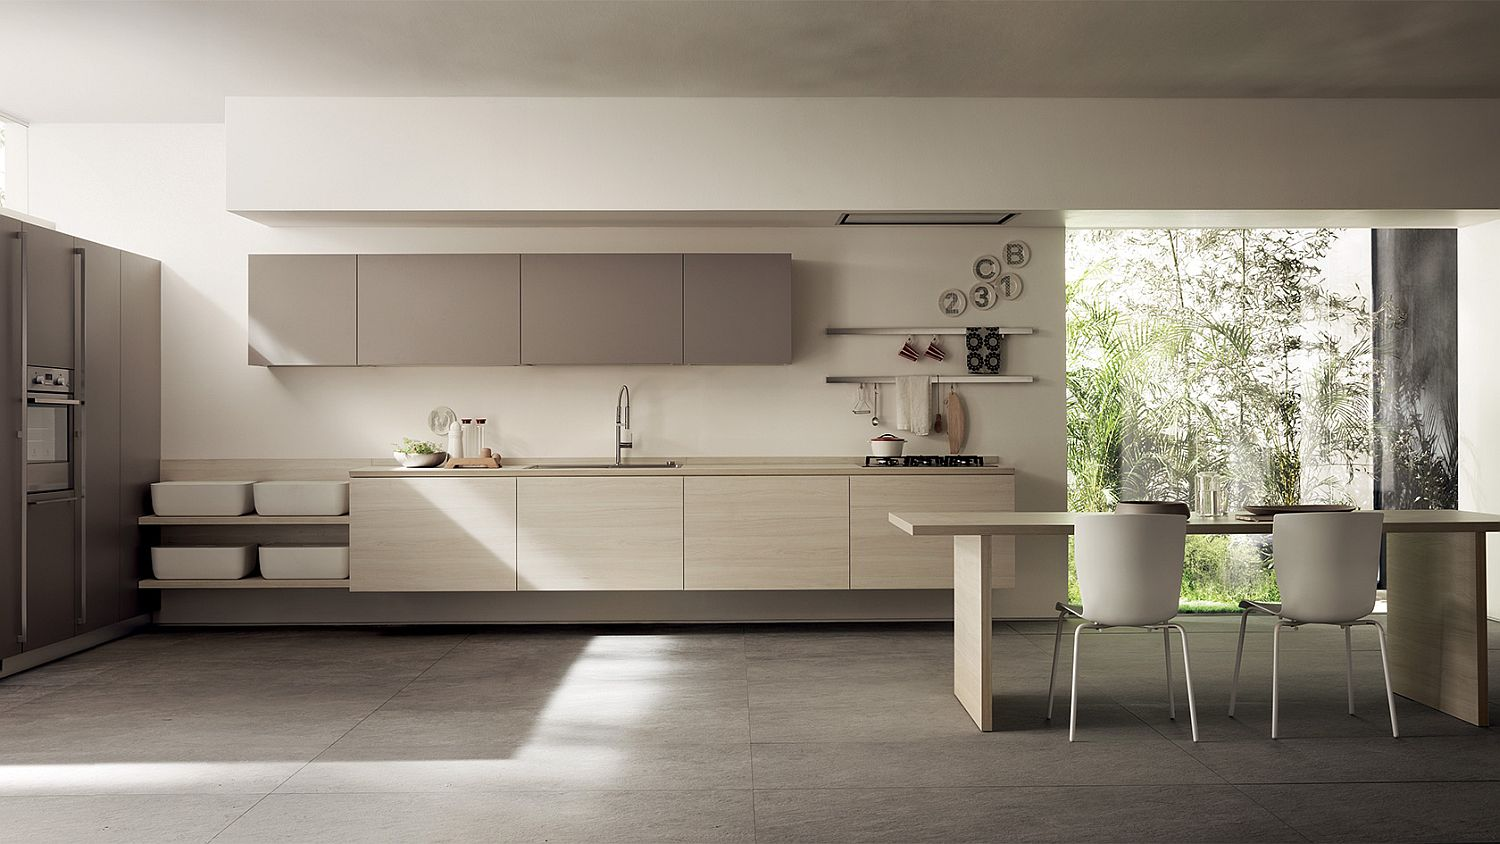 Custom minimal wooden units are the calling card of this exquisite Scavolini kitchen